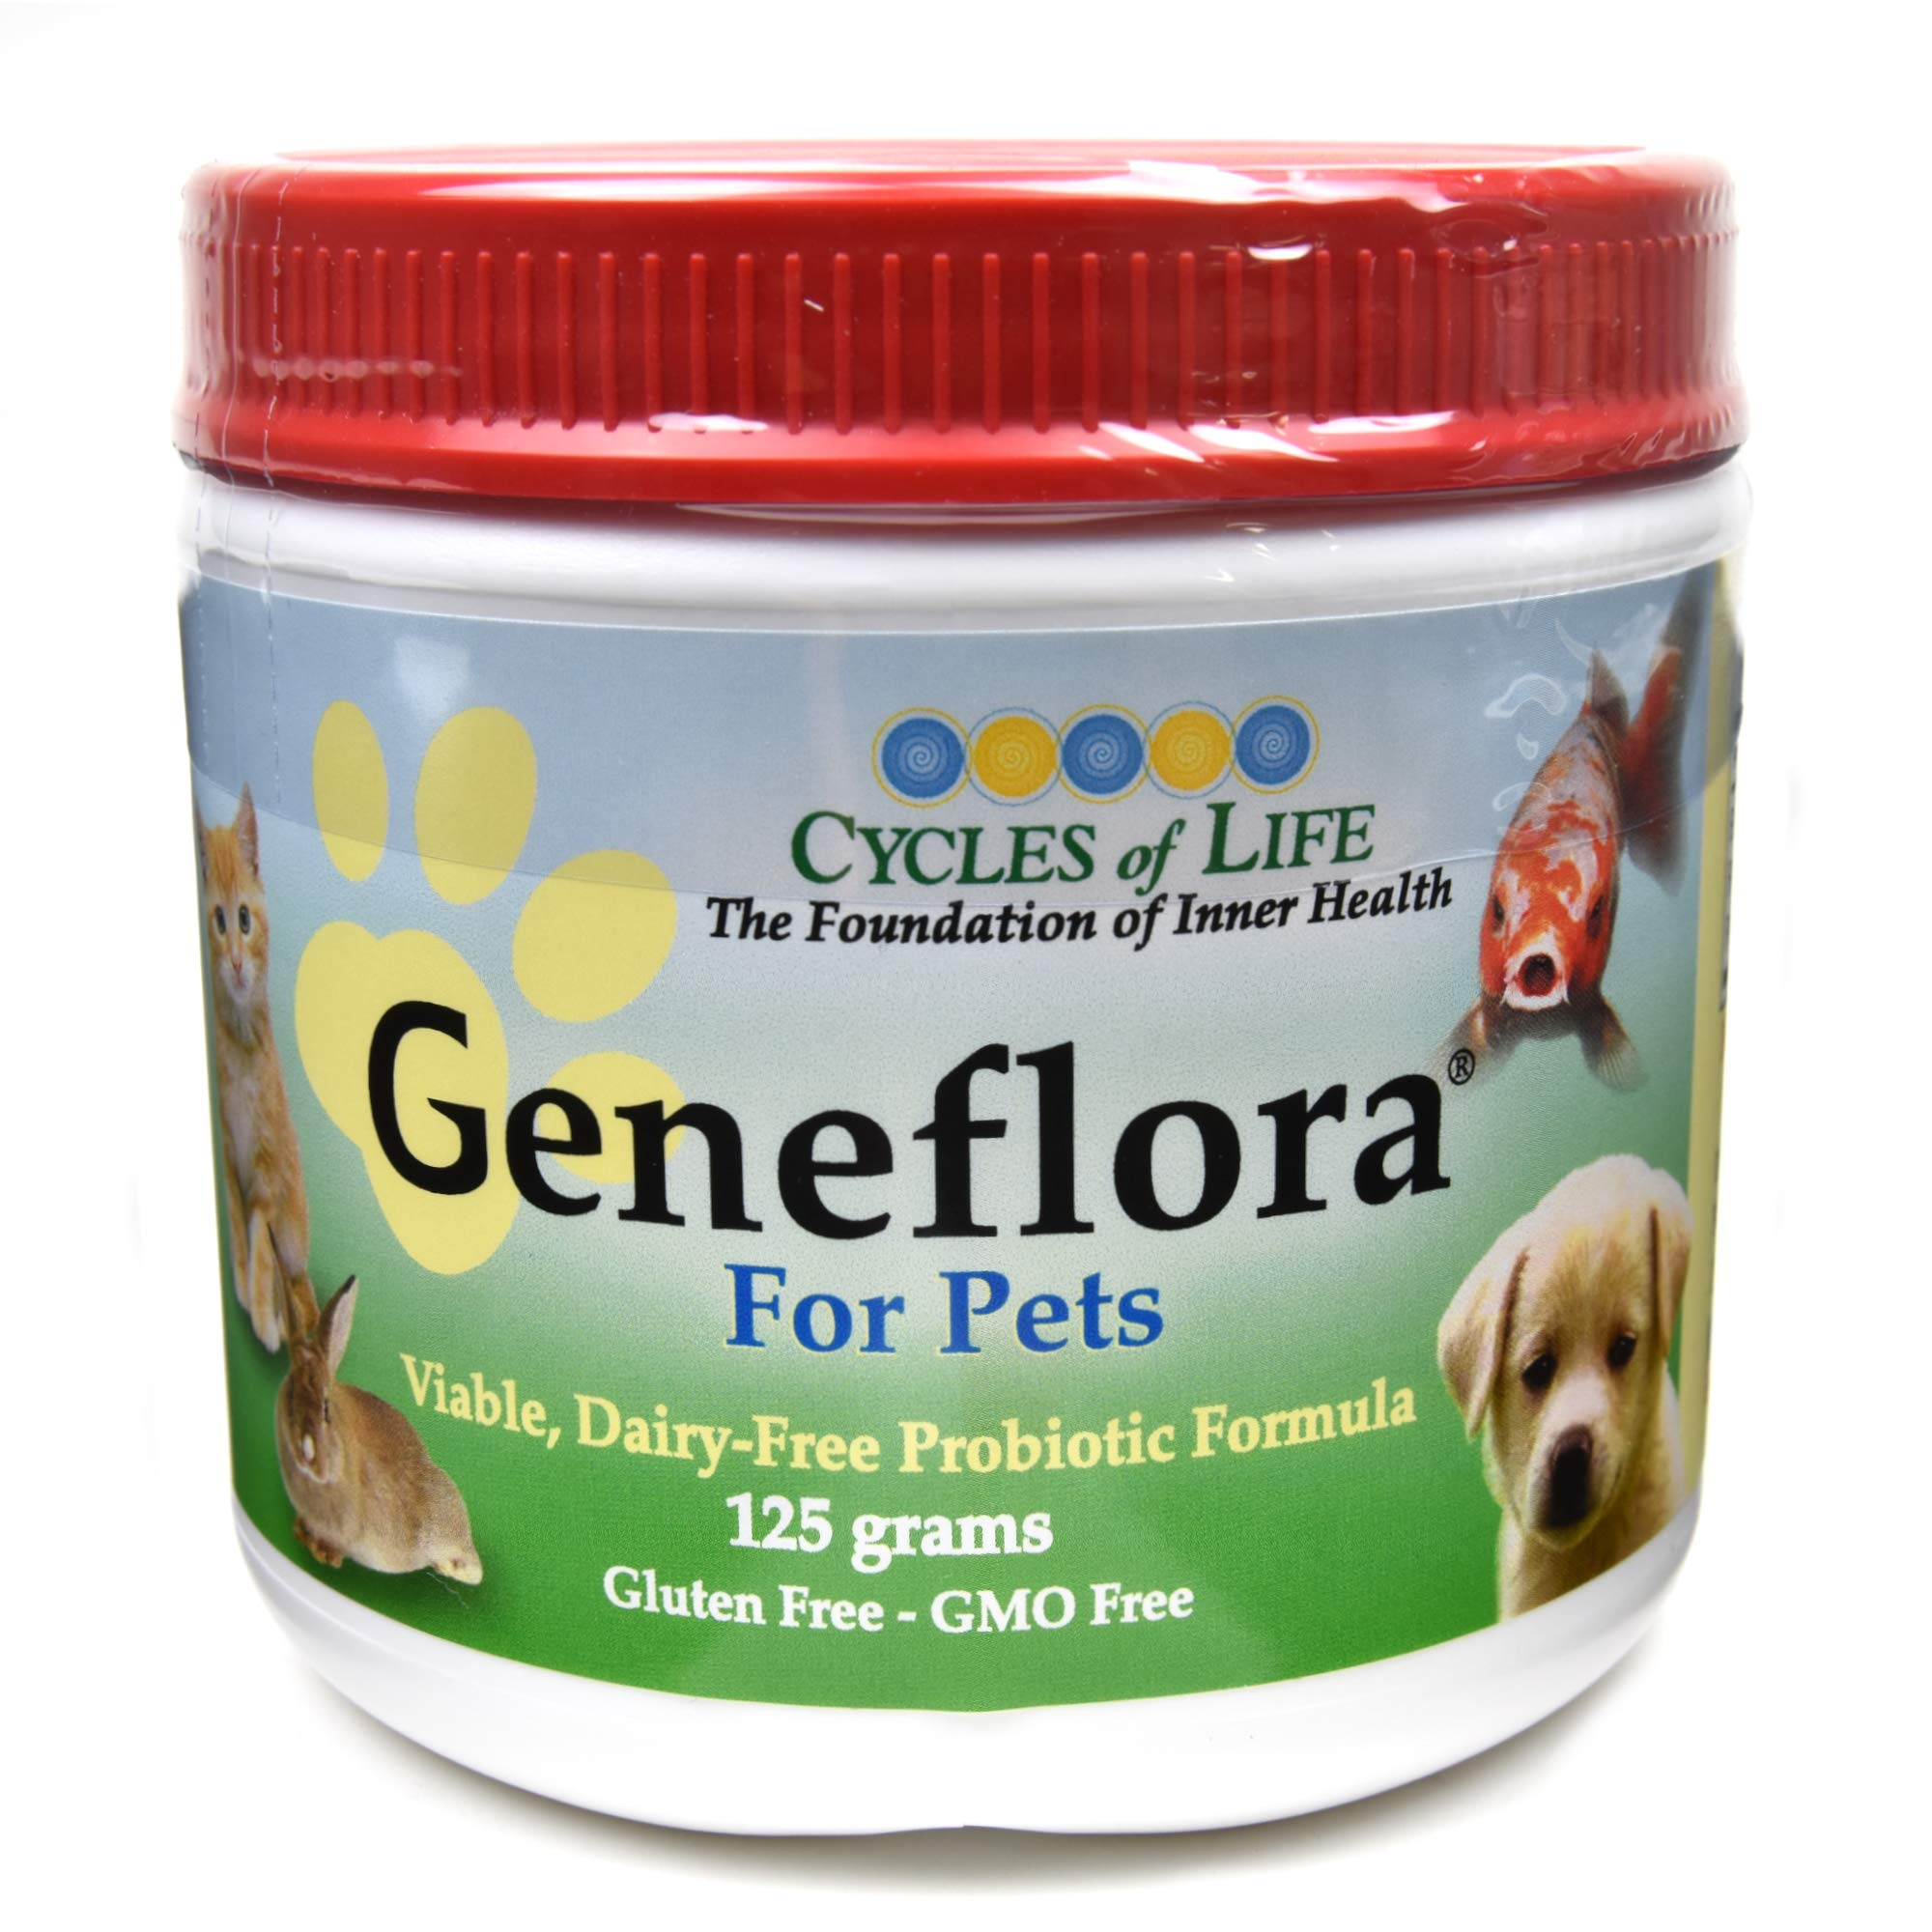 GENEFLORA - The Original Probiotic Powder Forumla for Dogs, Cats, and other Pets - Veterinarian Recommended - 125 Grams By Activhealth